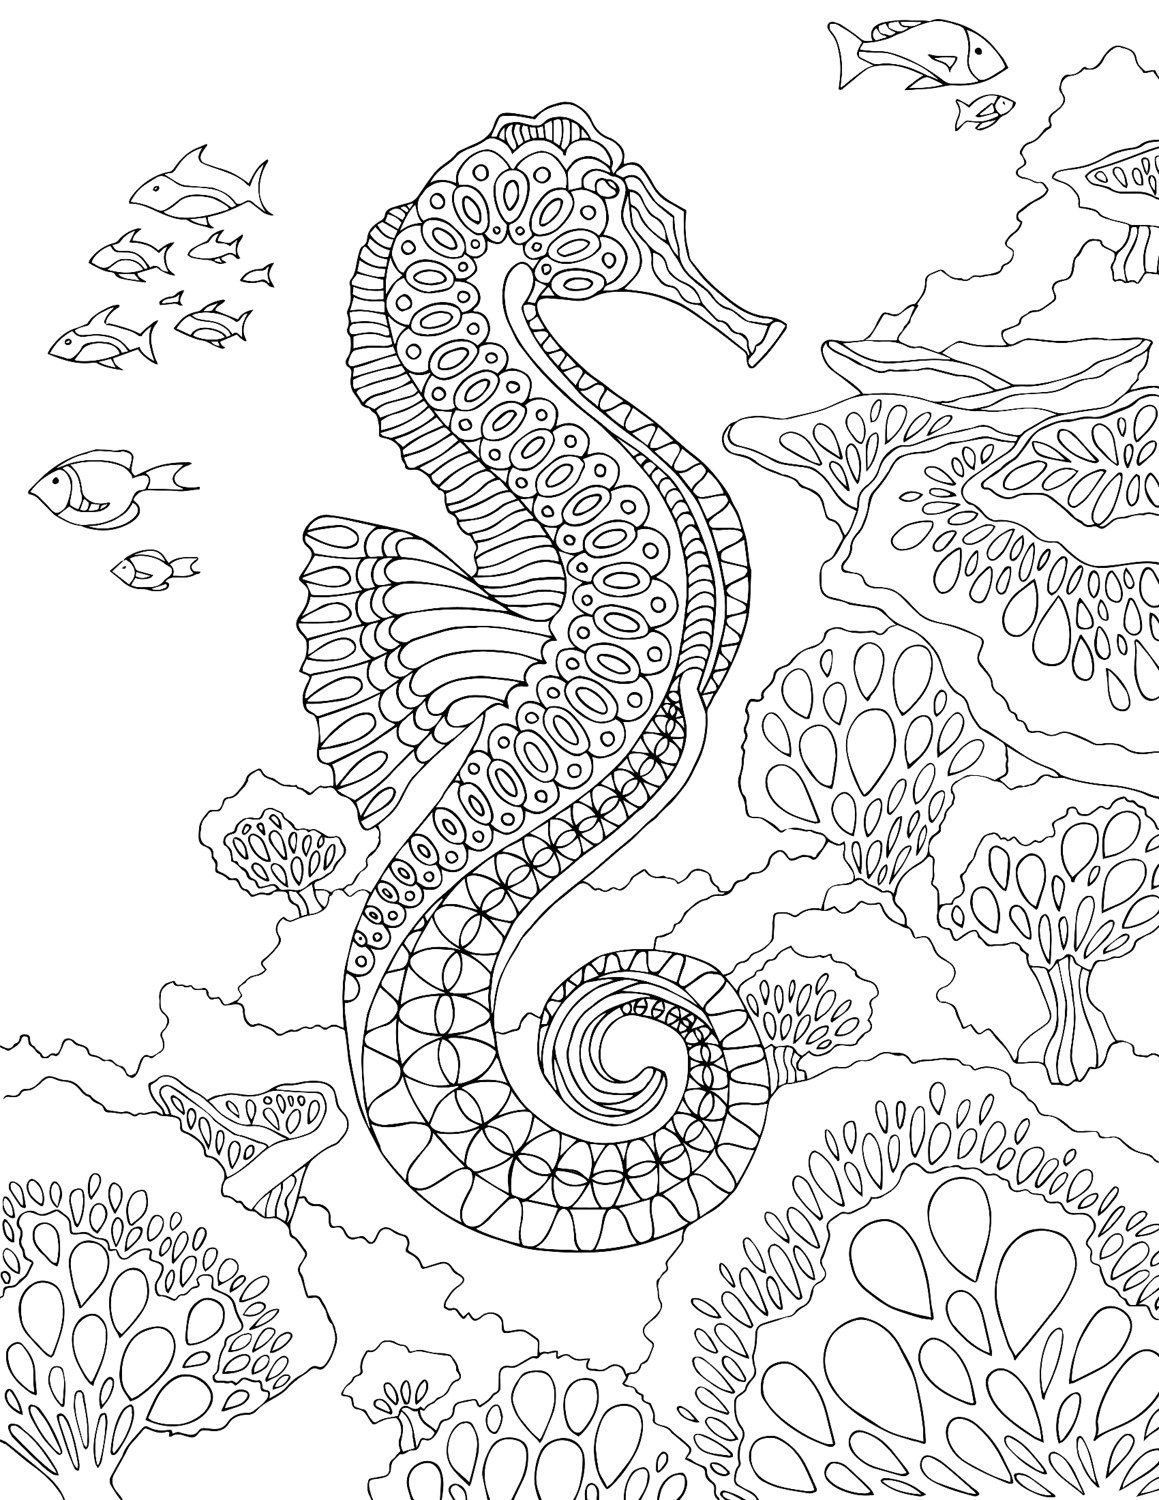 Seahorse Coloring Page - Under the Sea - Sea Creatures - Ocean ...